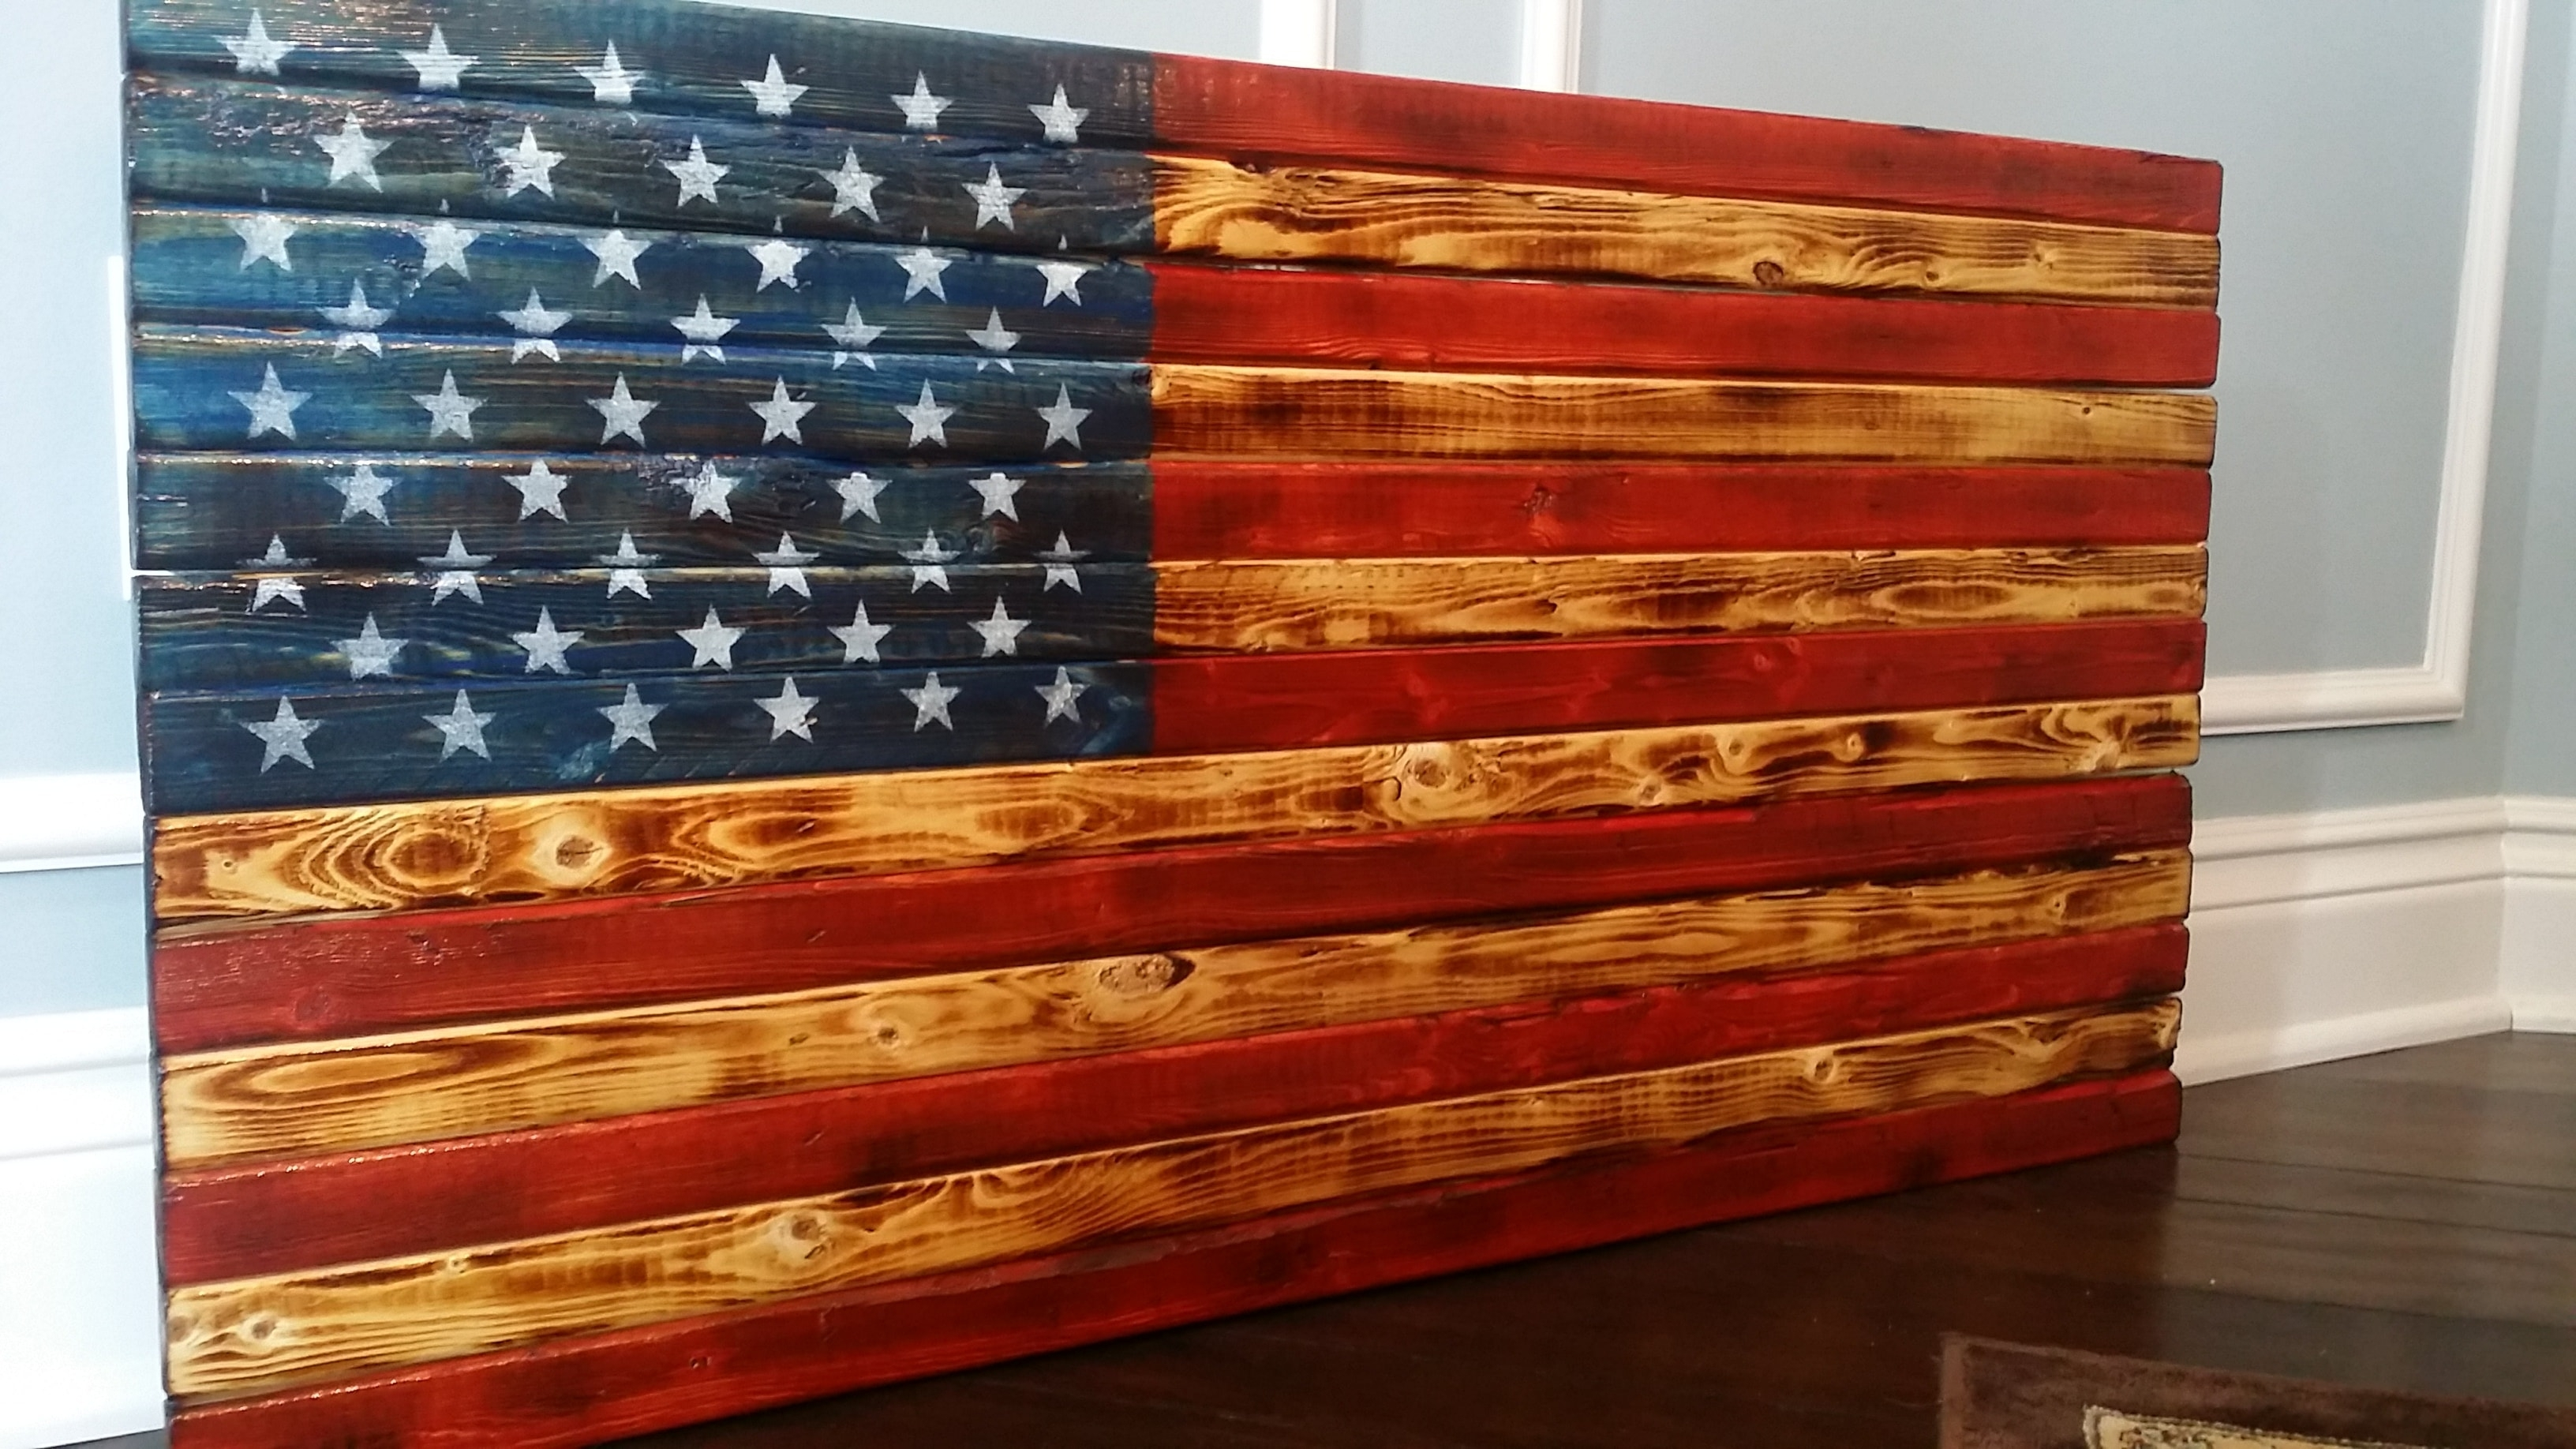 Handmade In Usa, Vintage, Rustic And Distressed Wooden U.s. American With Most Popular Rustic American Flag Wall Art (Gallery 3 of 20)